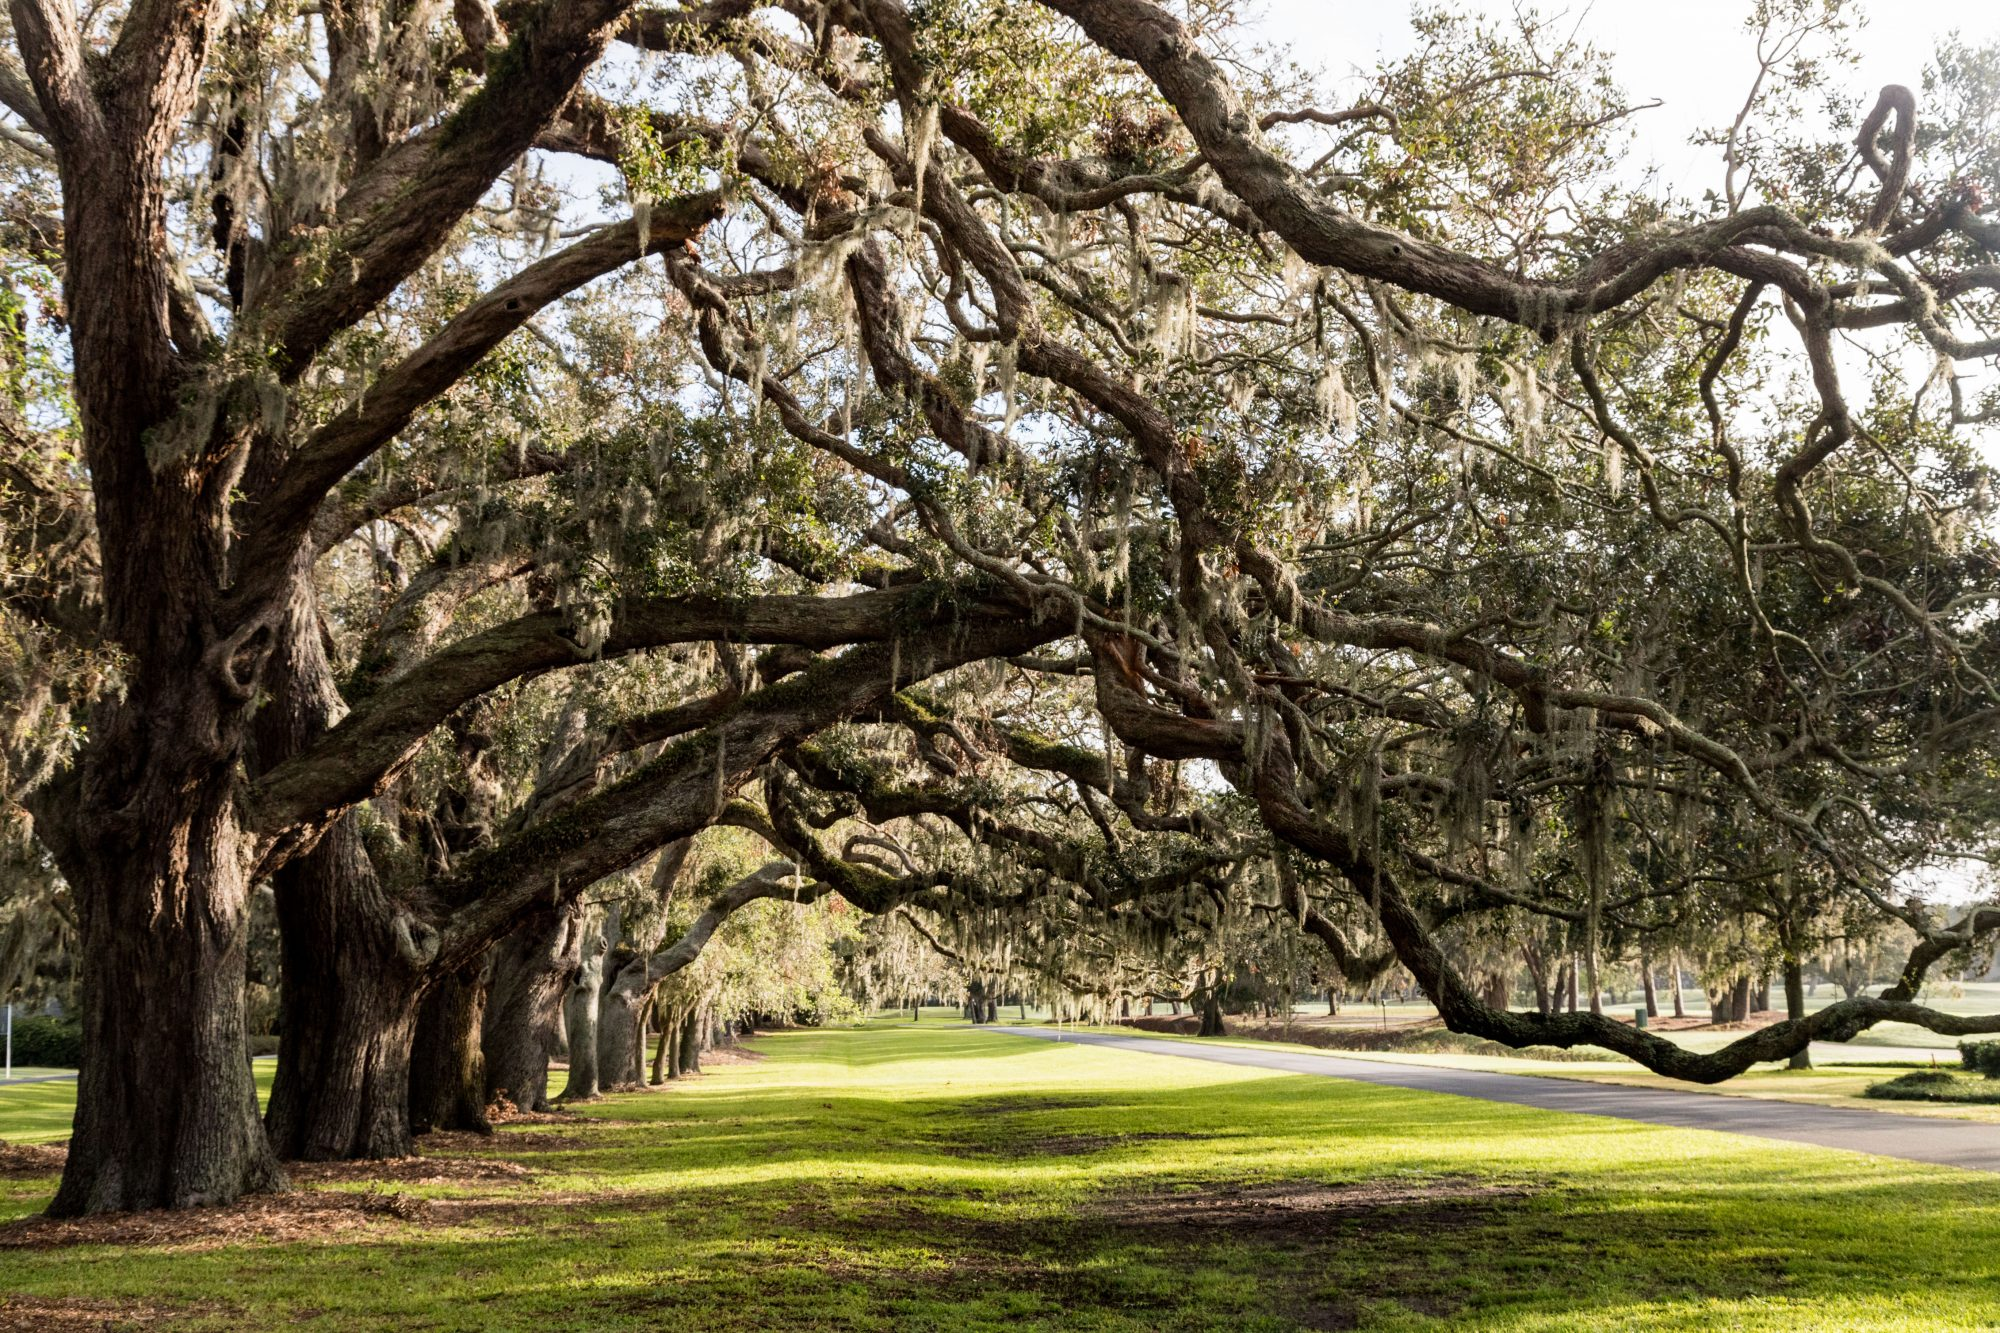 The Avenue of Oaks at the entrance of the Sea Island Golf Club